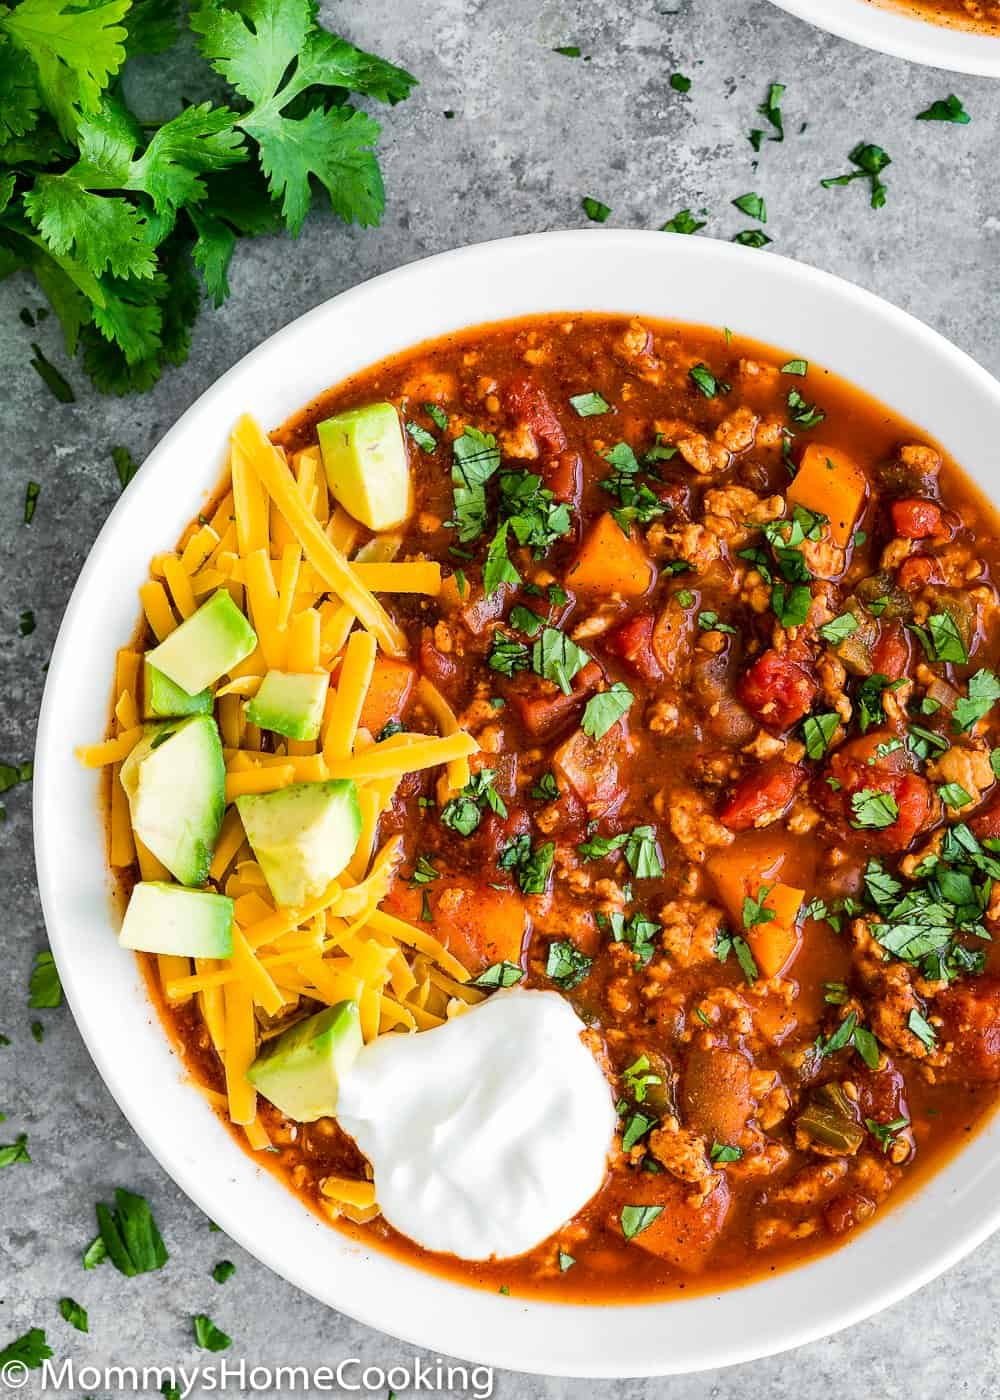 Healthy Low Carb Turkey Chili bowl with avocado, cheese and sour cream